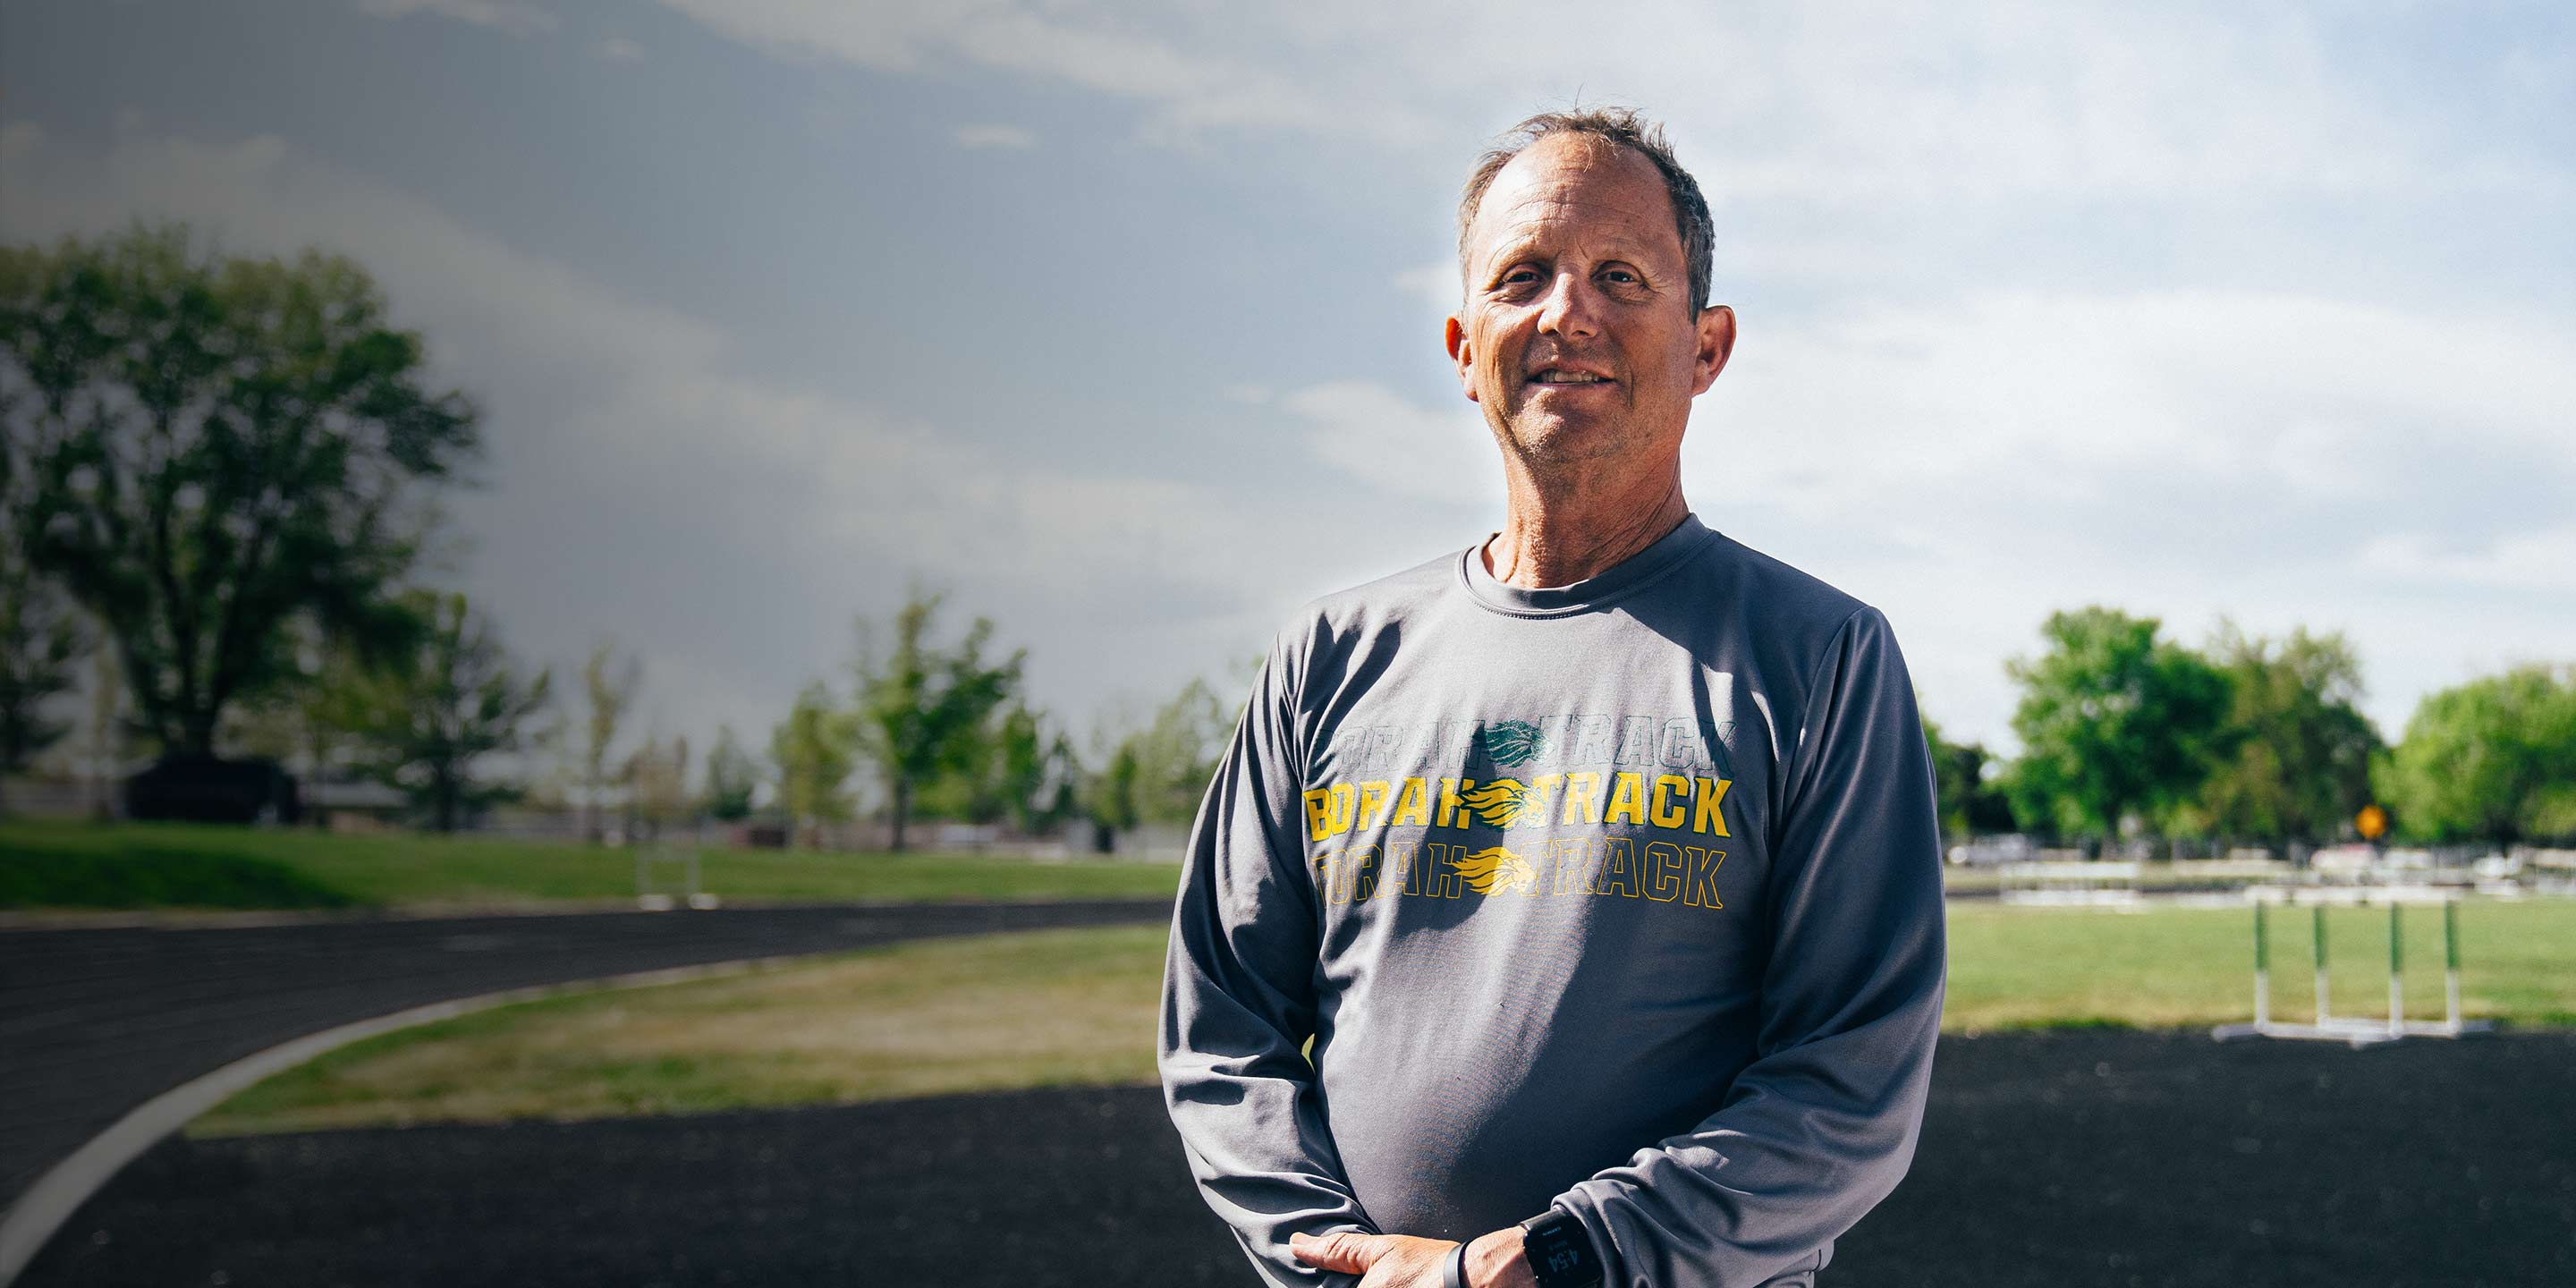 The 2019 winner, Tim Severa, smiling at the camera in front of a track; the sun is out and his shirt reads Borah Track.